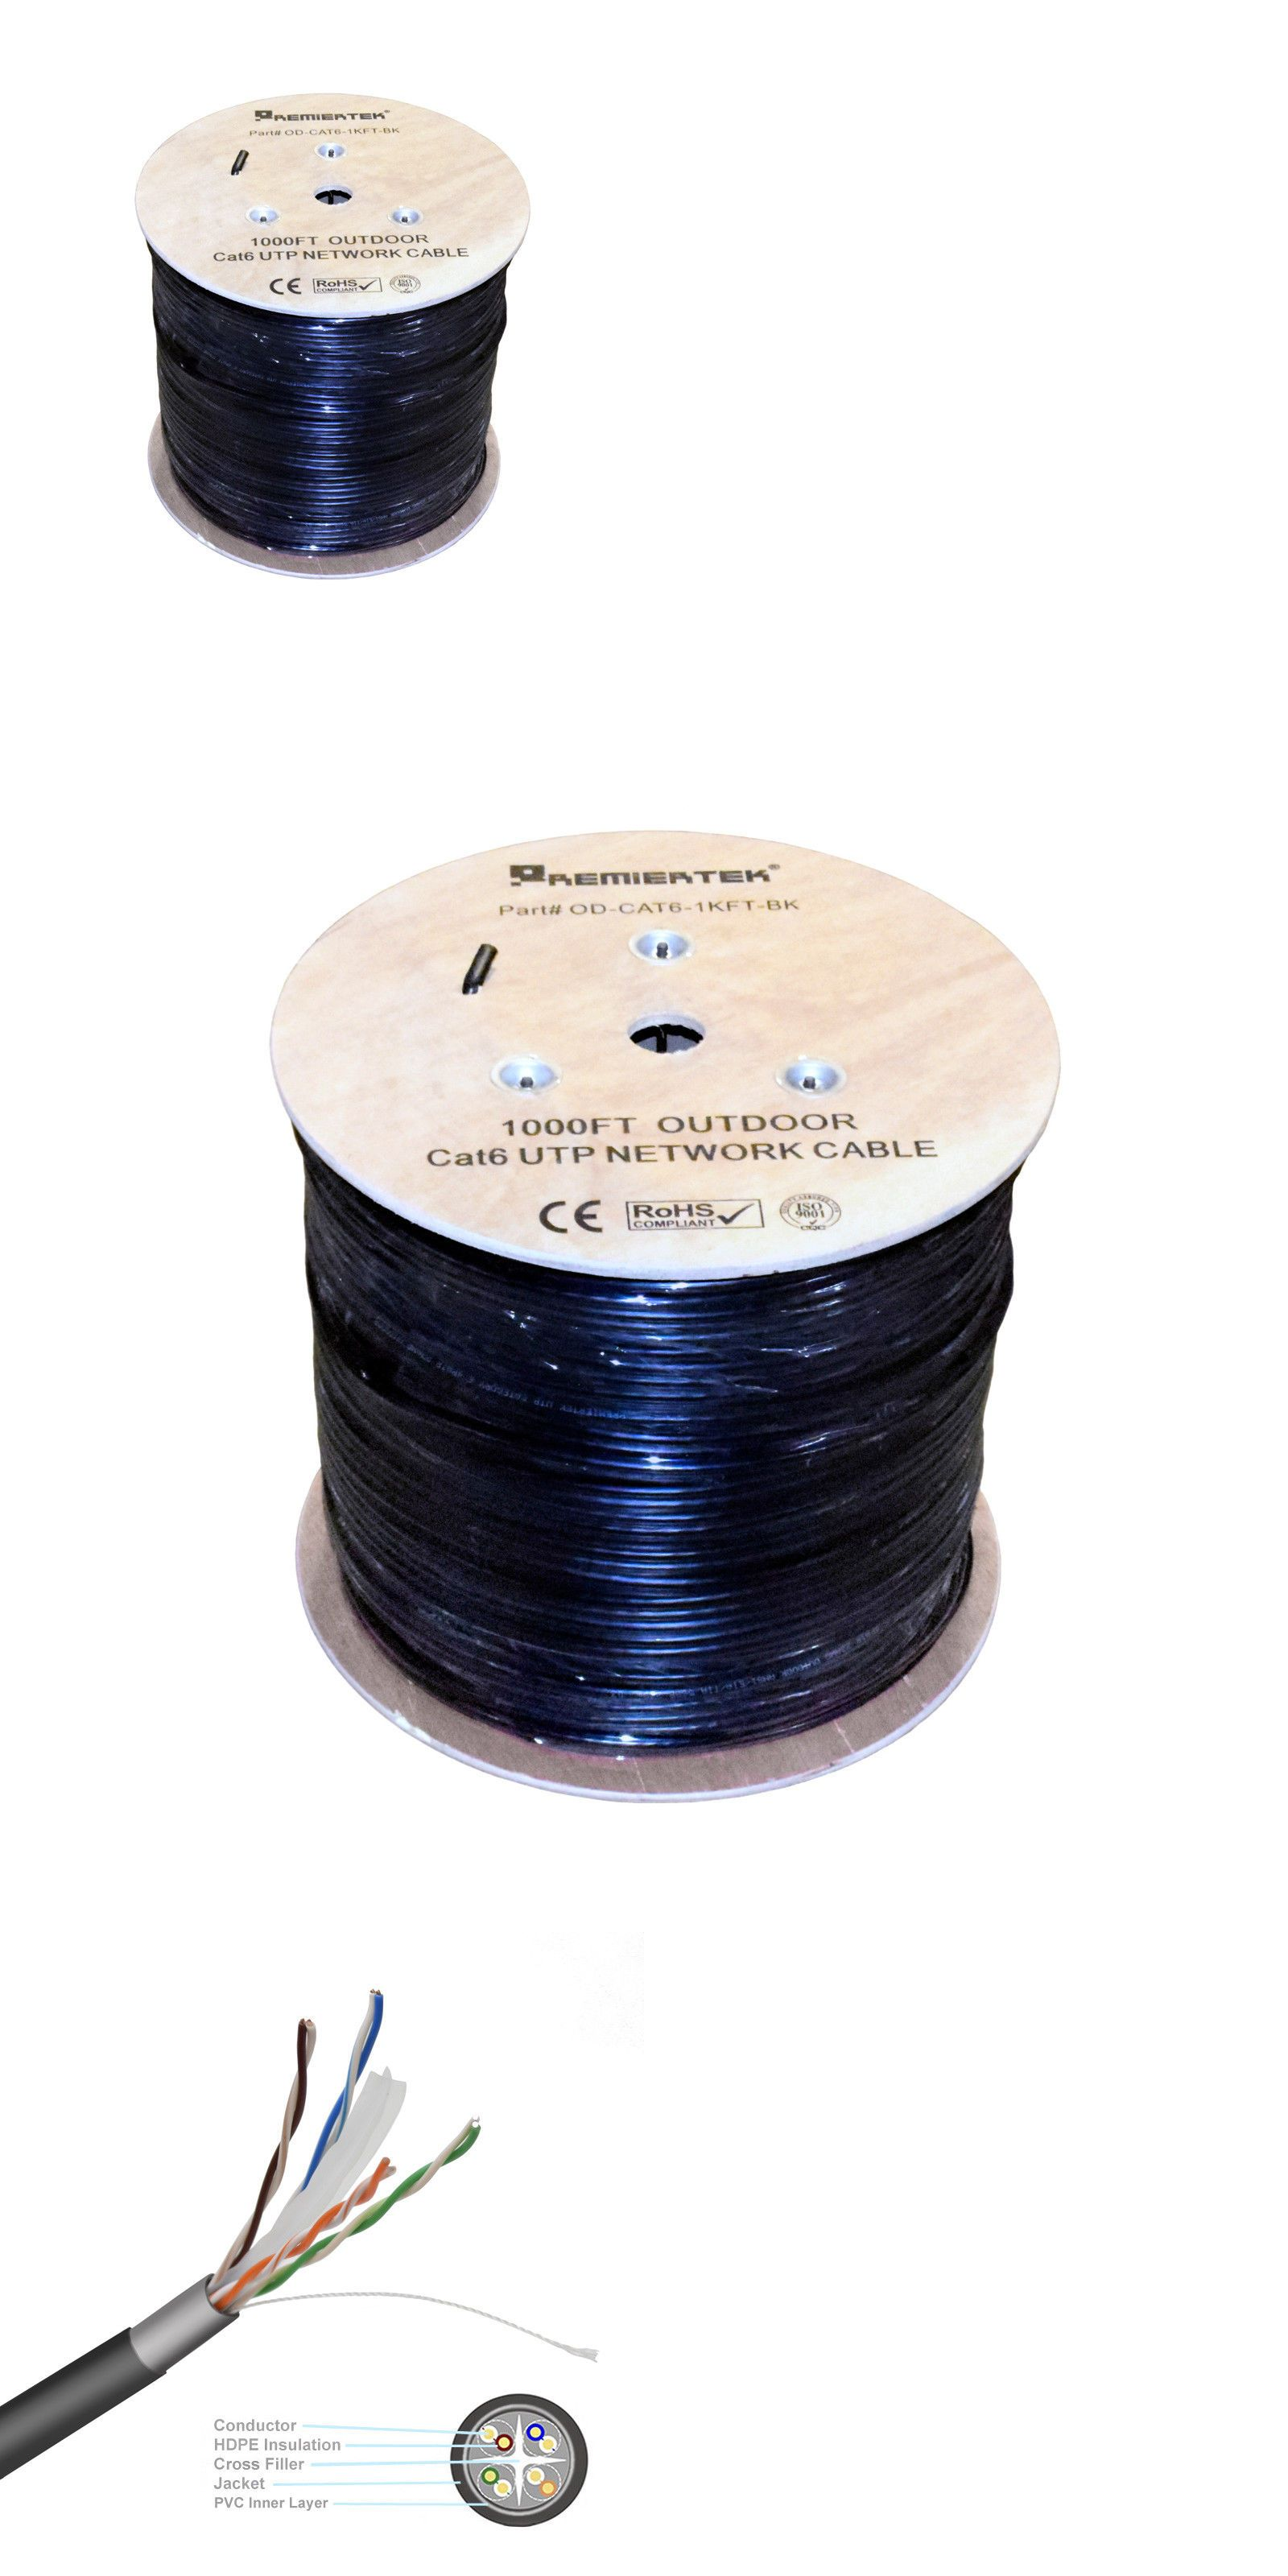 Ethernet Cables Rj 45 8p8c 64035 1000 Ft Cat6 Uv Cmx 23 Awg Waterproof Outdoor Direct Burial Solid Network Cable Buy It Now Ethernet Cable Networking Cables